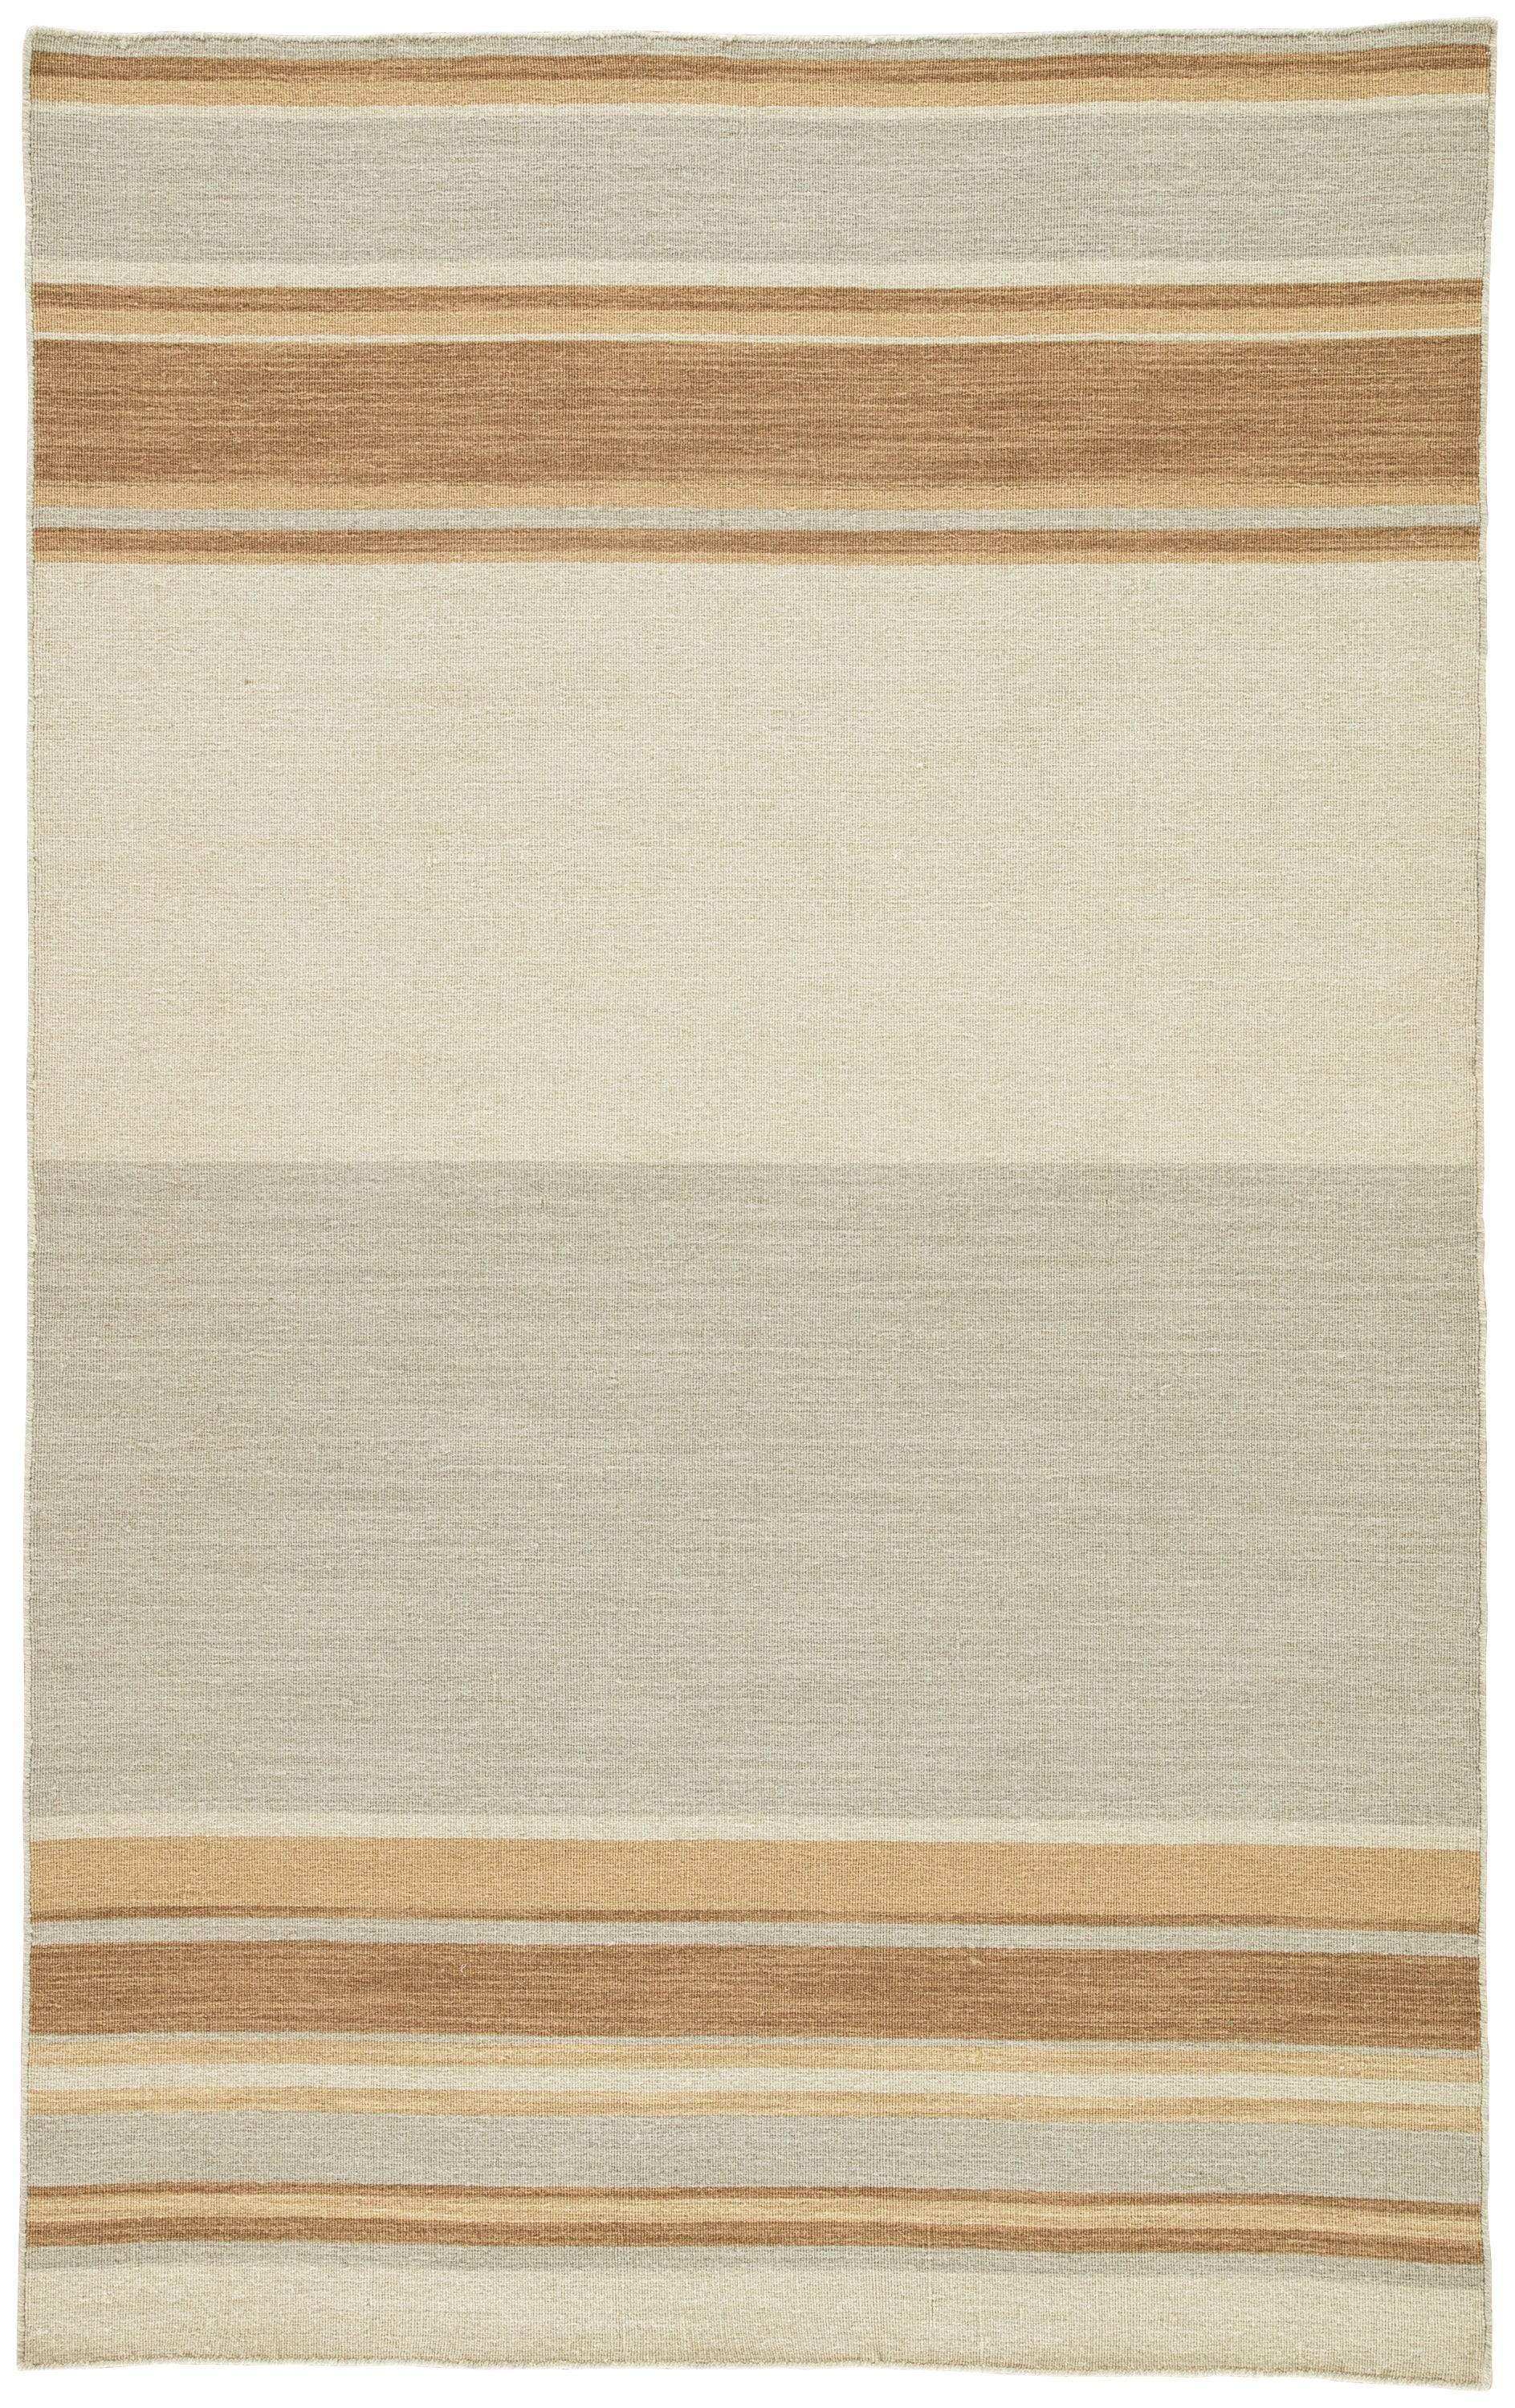 Rectangle Brown Stripe Dhurrie Wool Transitional recommended for Kitchen, Bedroom, Bathroom, Dining Room, Office, Hallway, Living Room